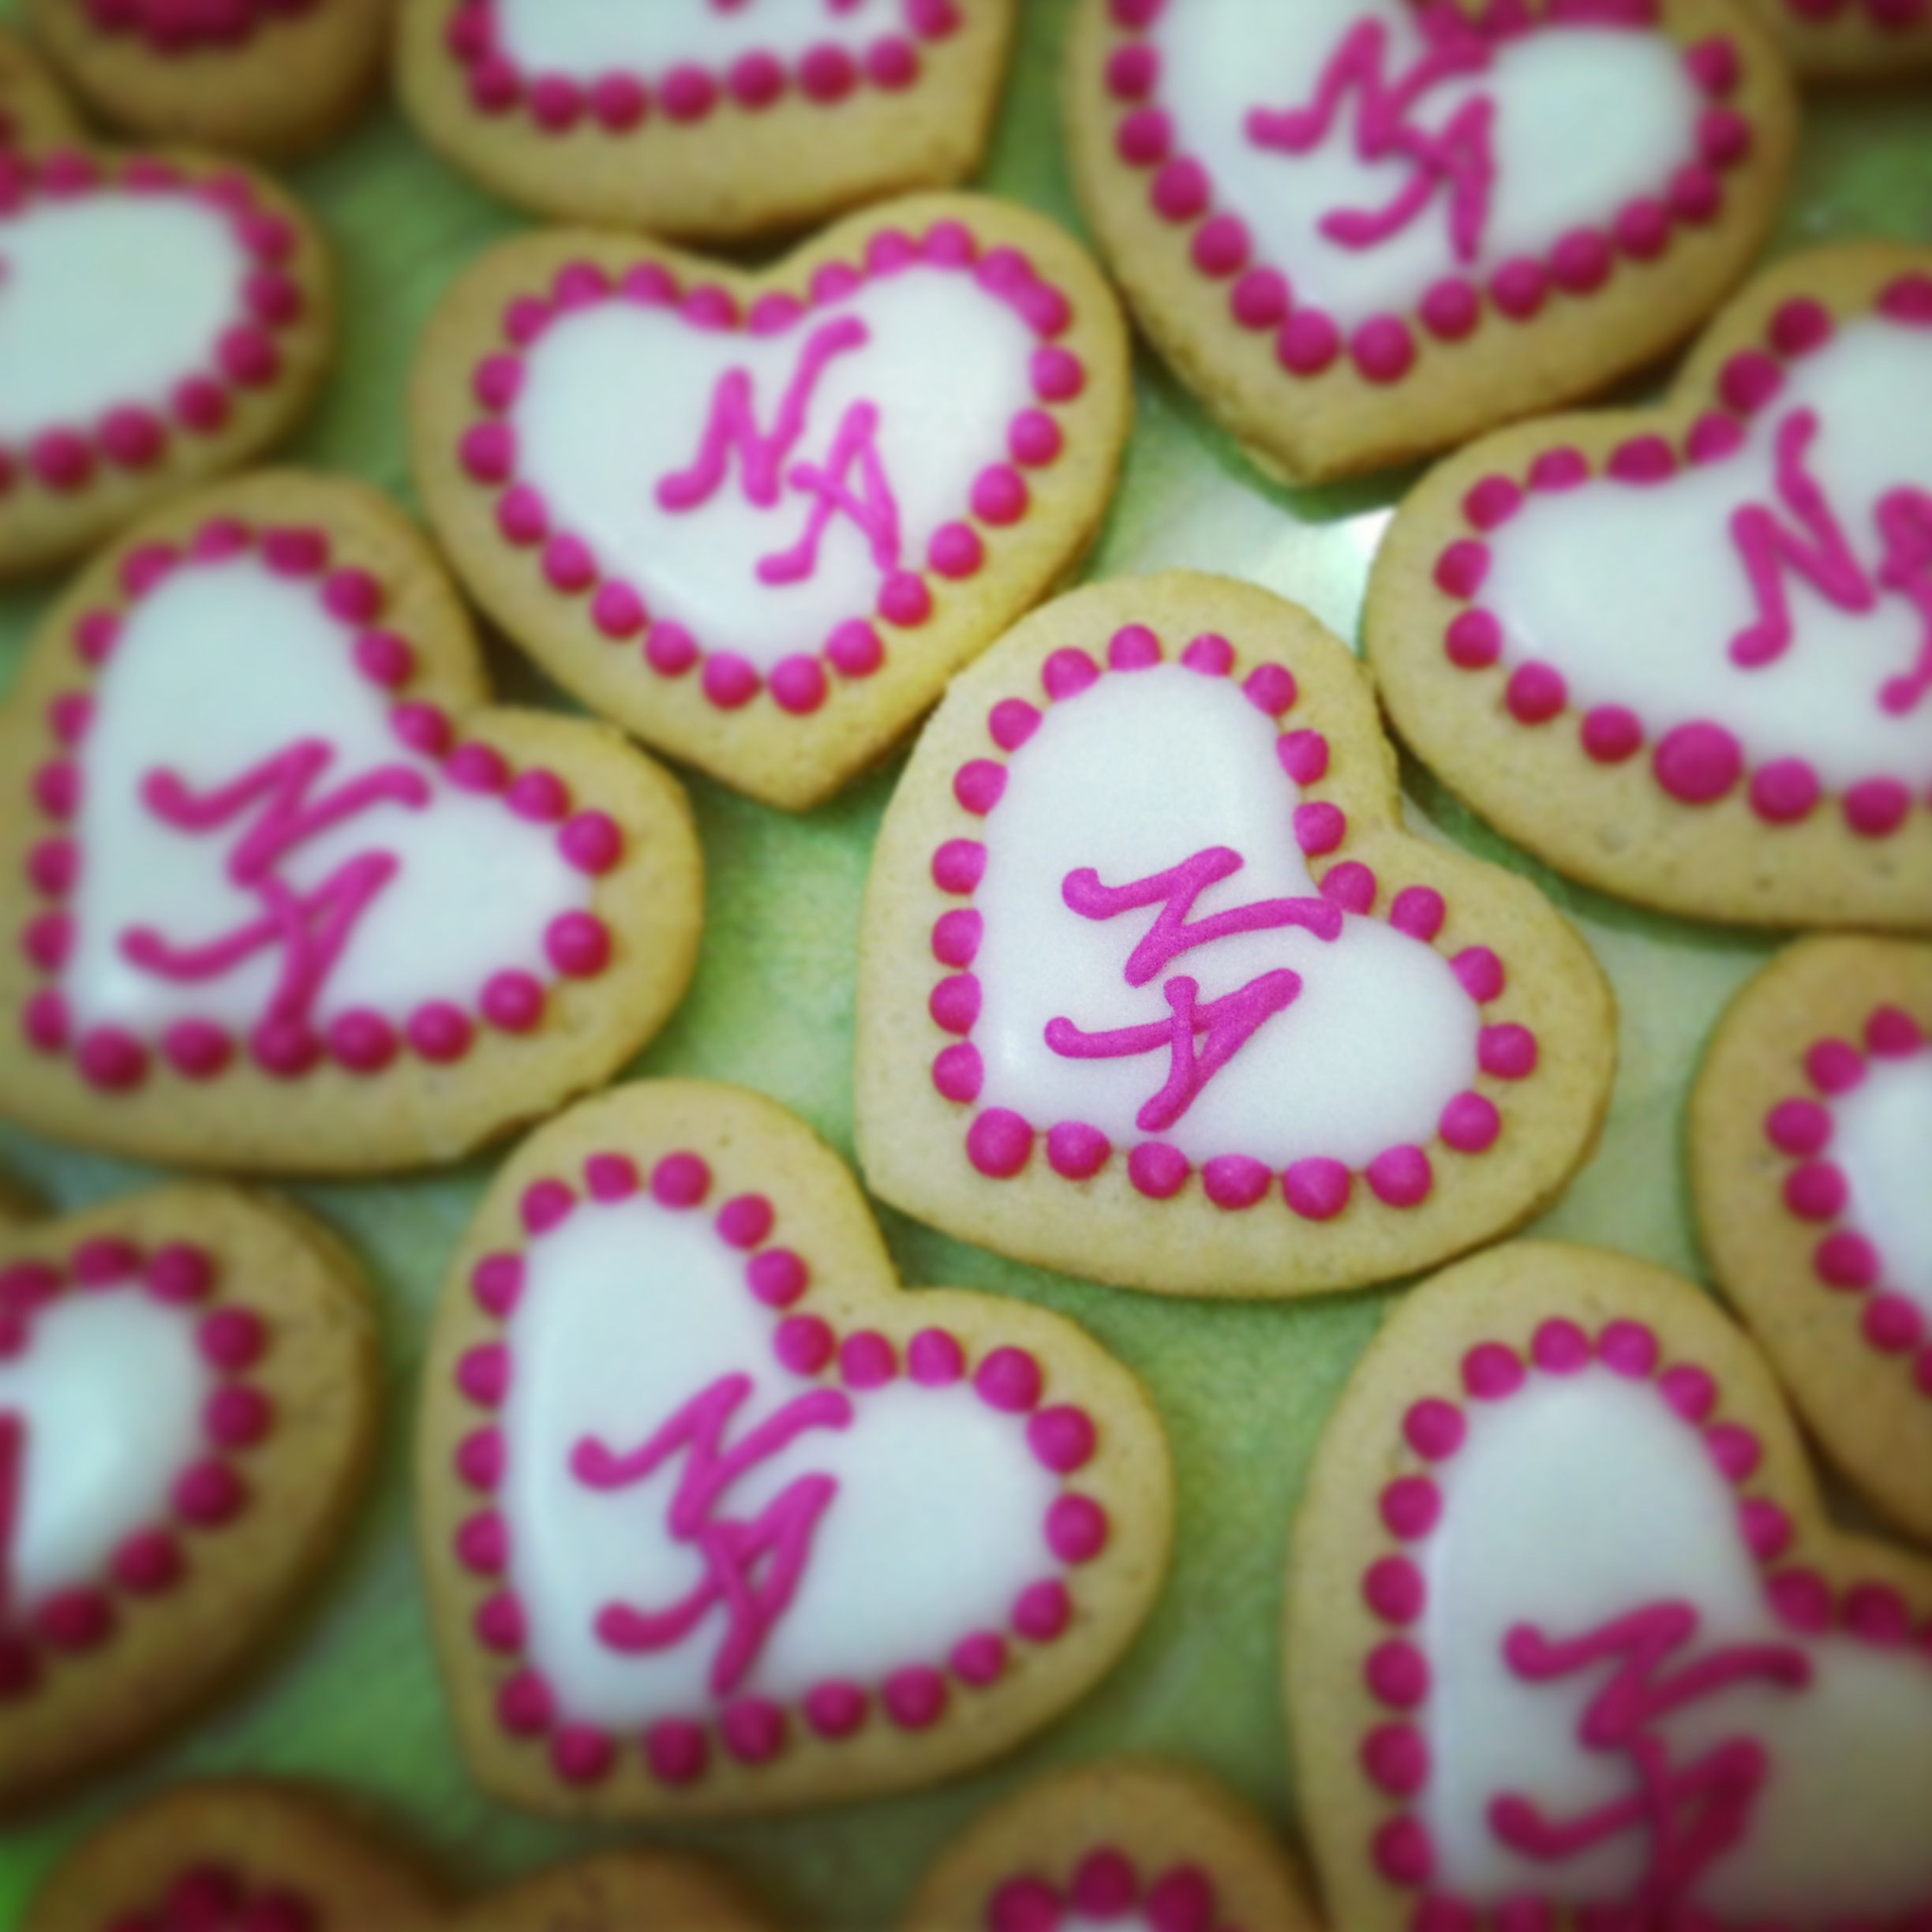 Heart shaped N&A cookies | From my kitchen | Pinterest